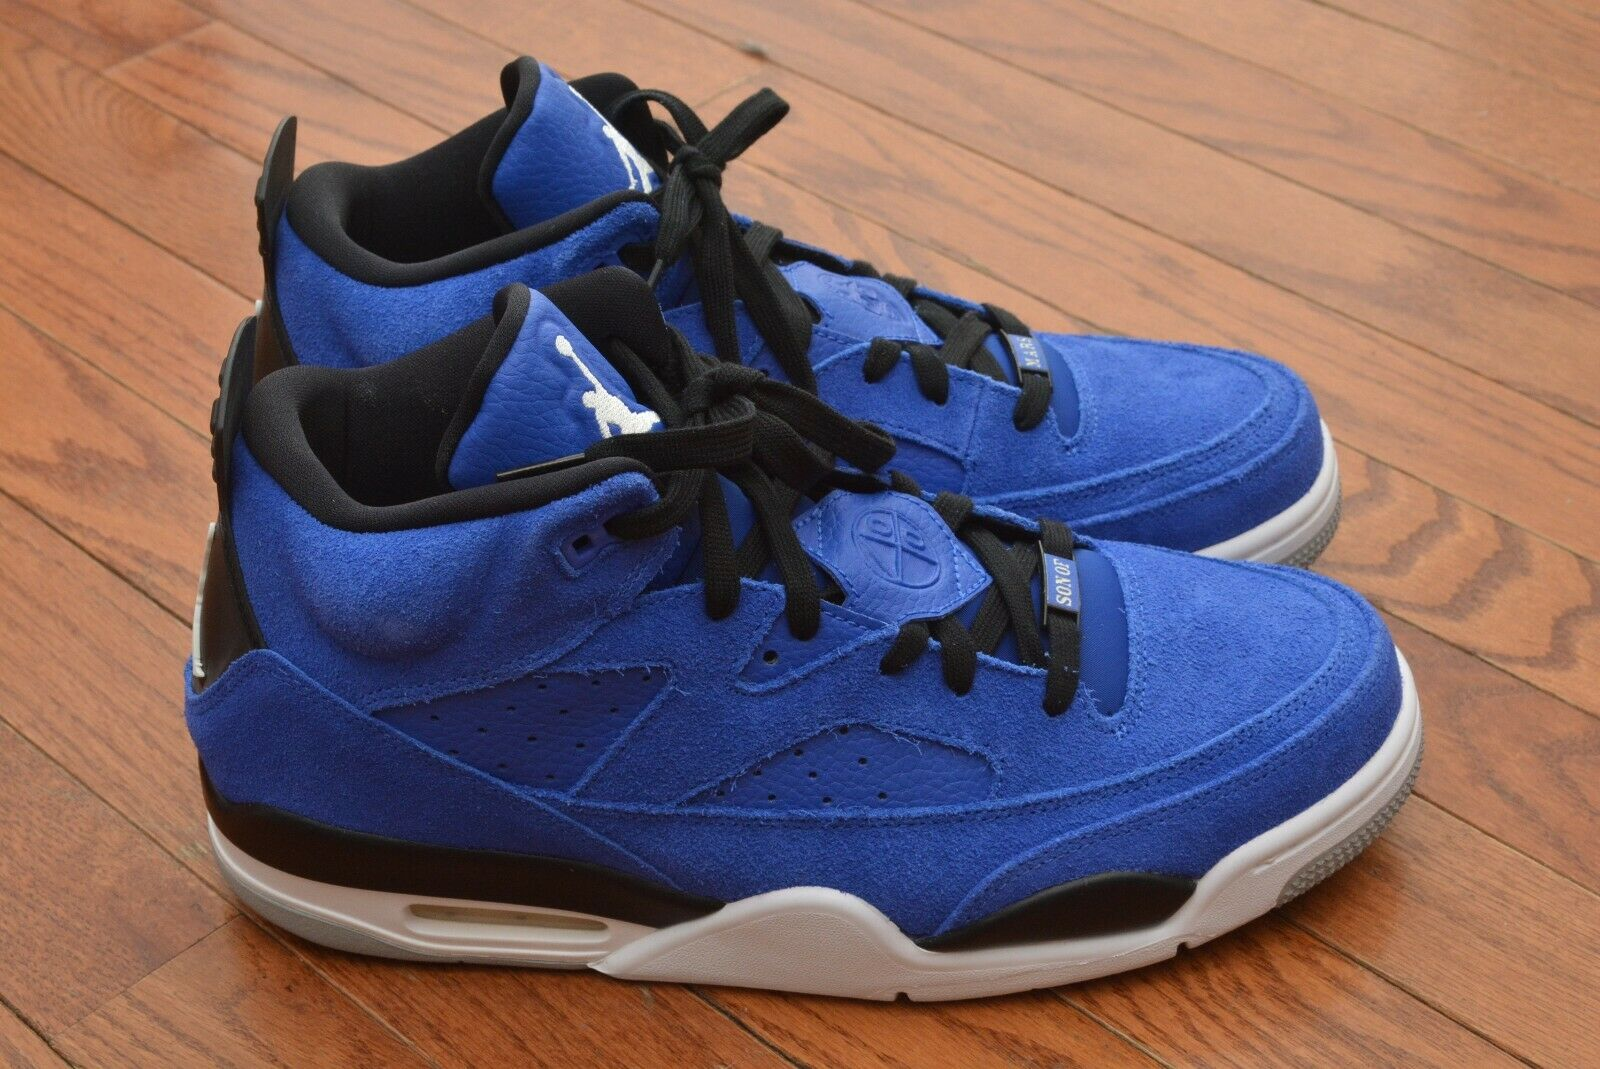 Jordan Son of Mars Low Hyper Royal 580603 401